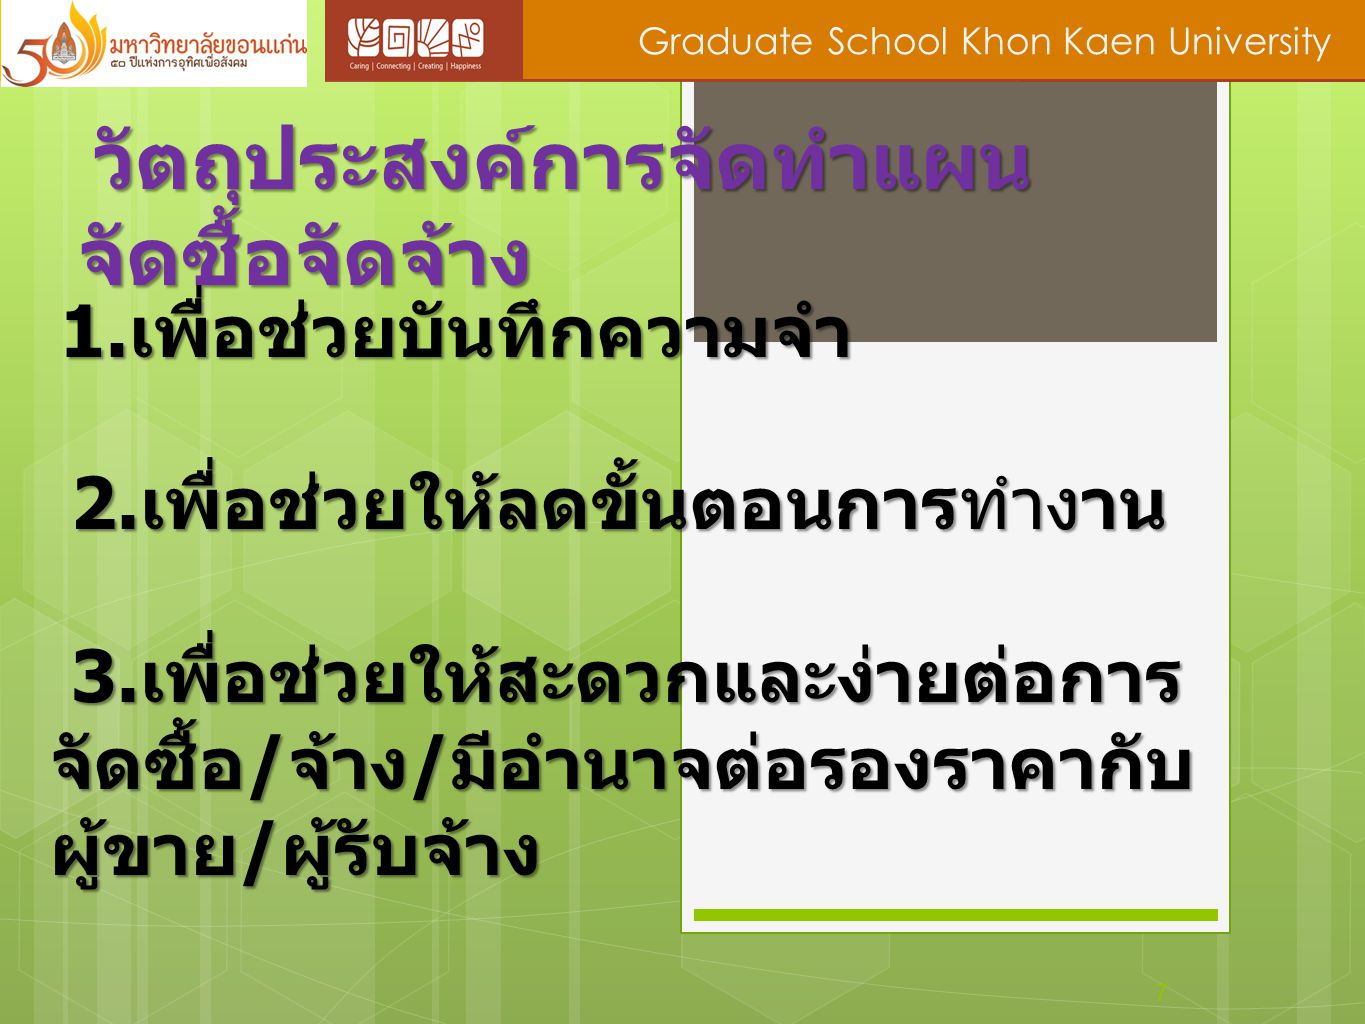 28 Graduate School Khon Kaen University